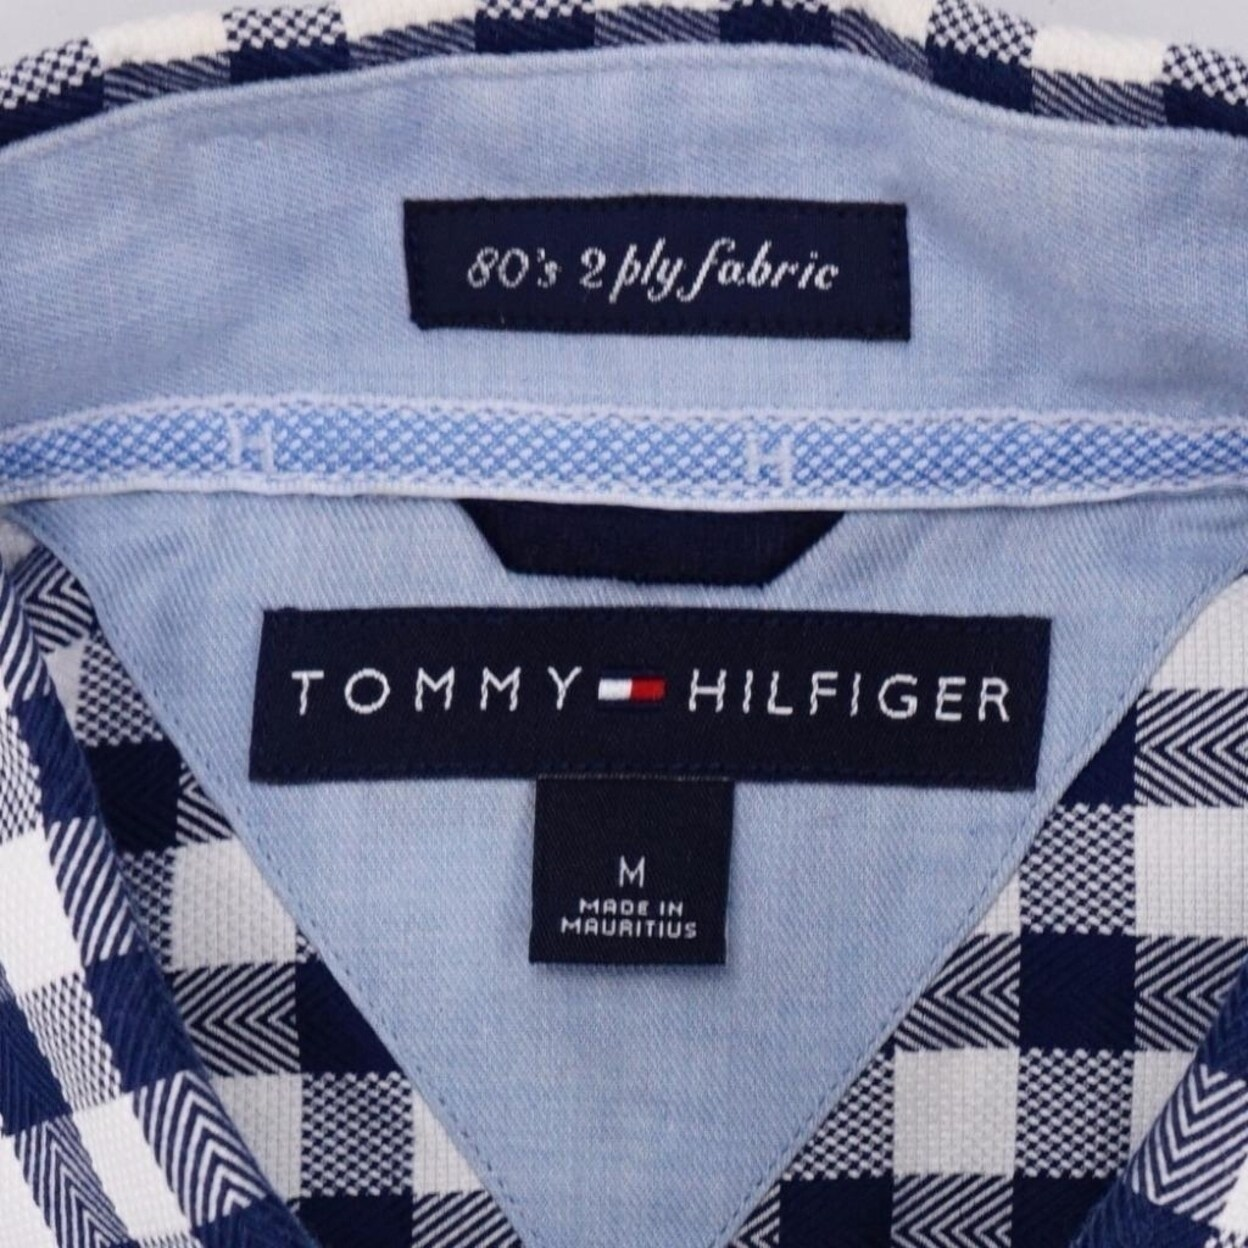 bae85da6 Shop TOMMY HILFIGER 80's 2-Ply Fabric Button Front Shirt Lng Sleeve Mens M  - Free Shipping On Orders Over $45 - Overstock - 23019628